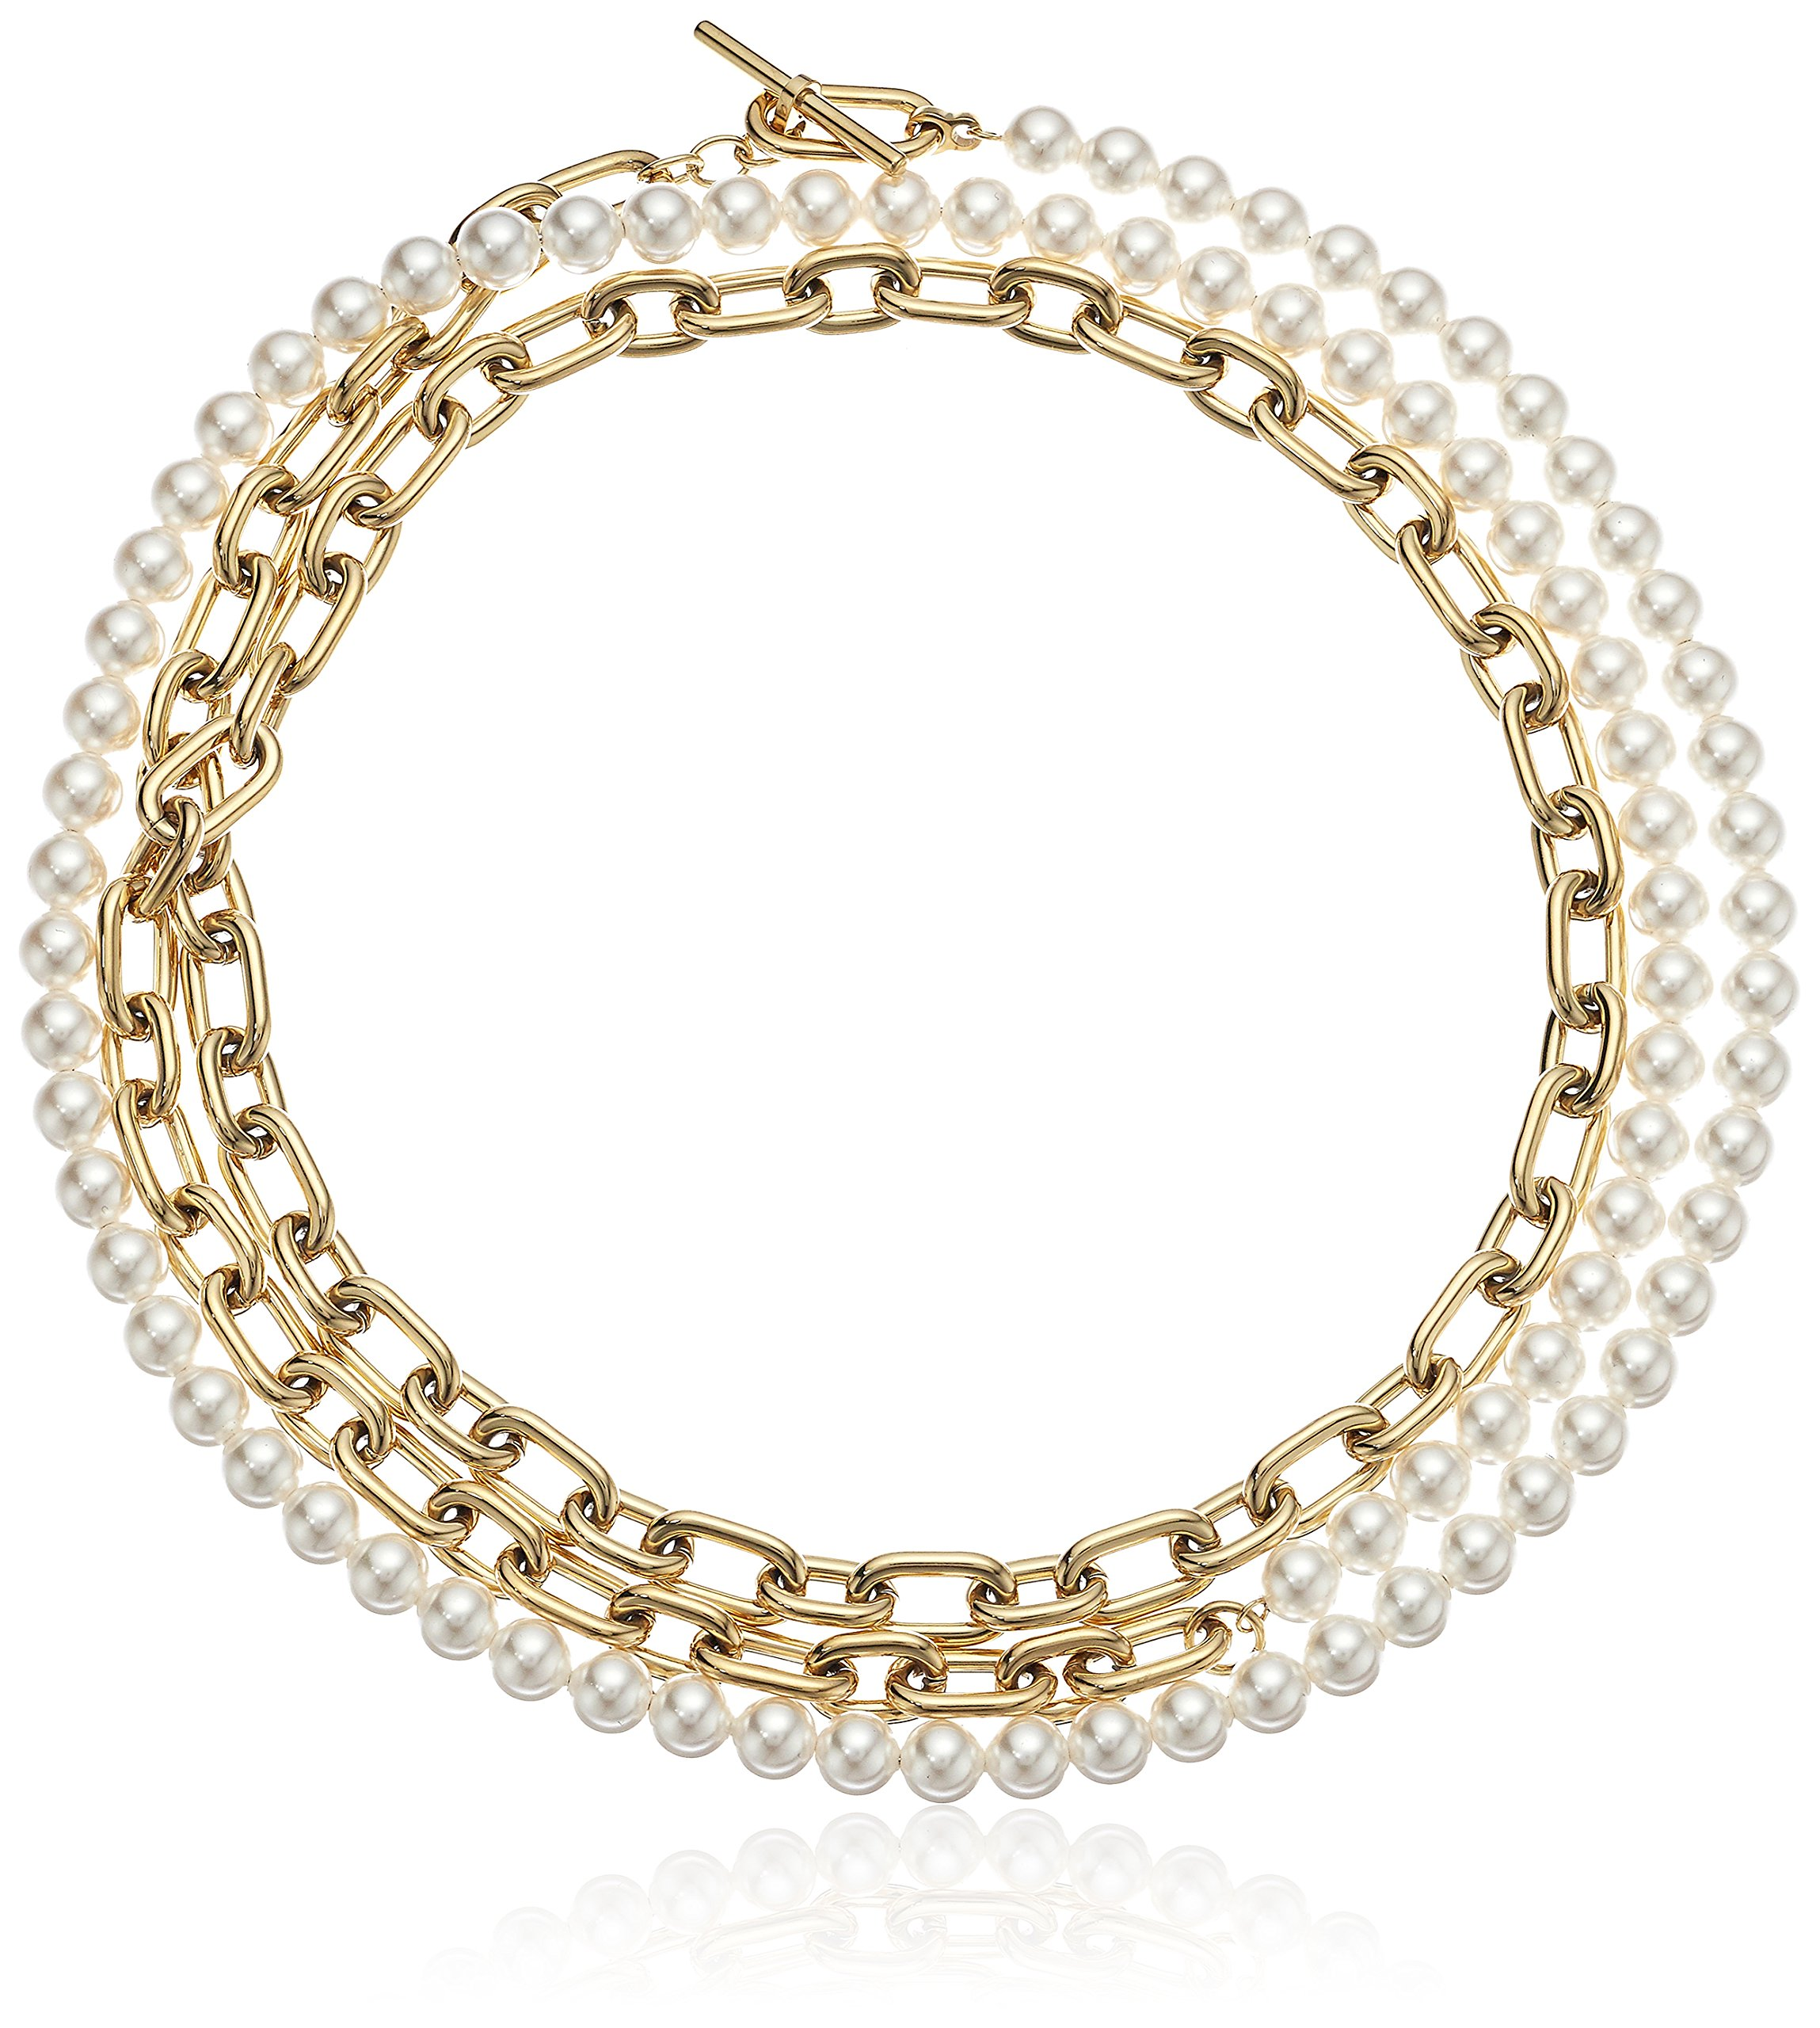 Michael Kors ''Fashion Pearl Links Gold-Tone Choker Pendant Necklace by Michael Kors